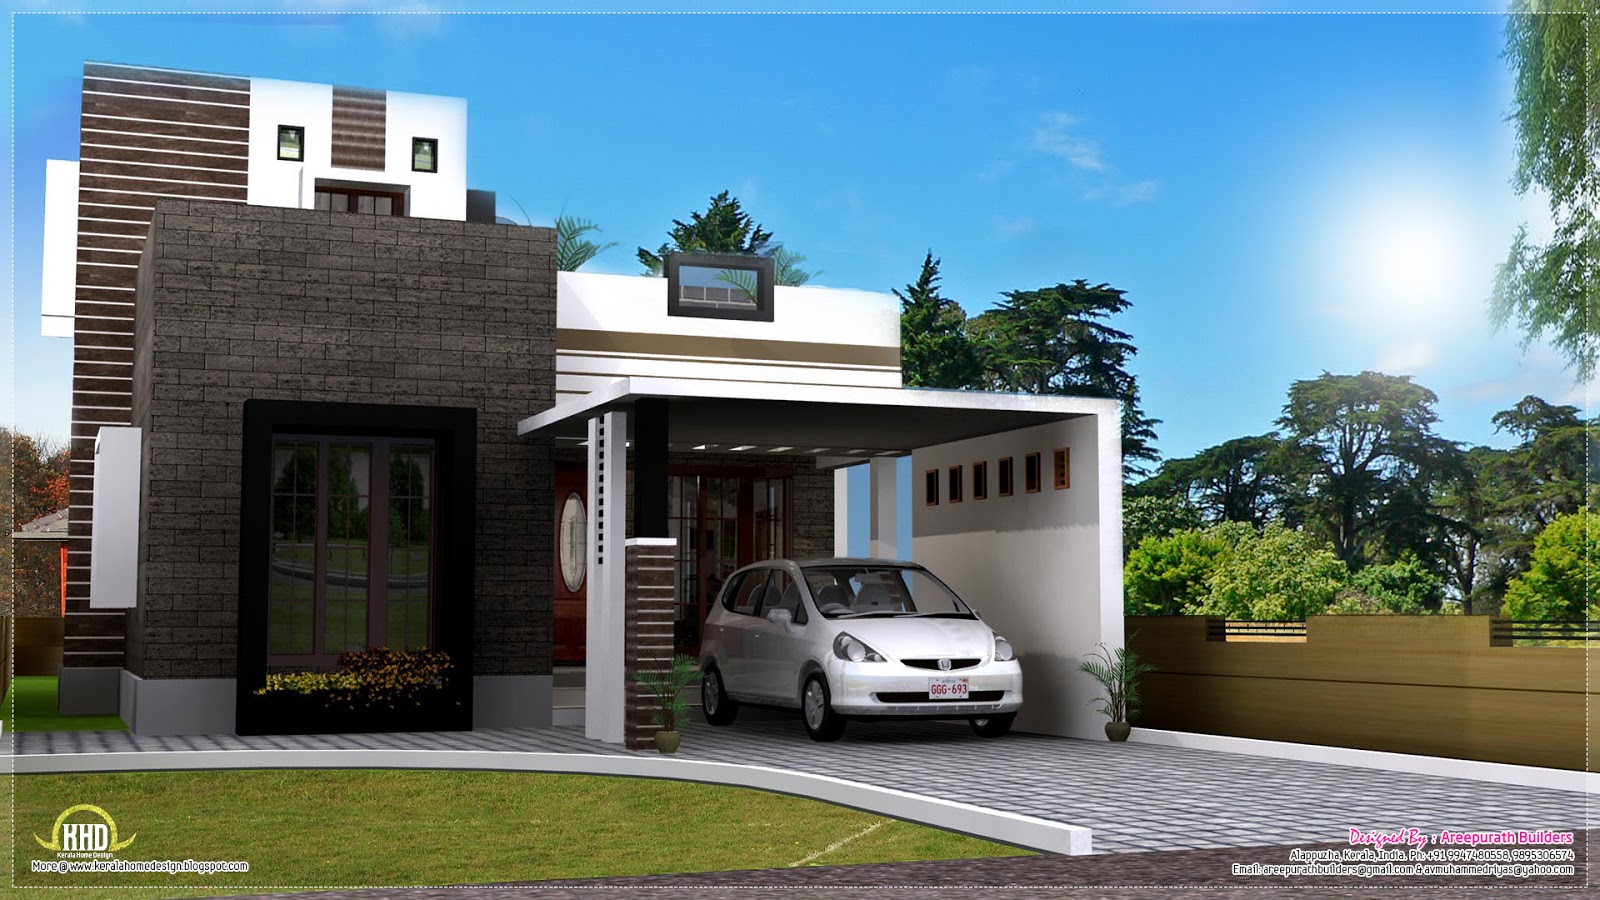 Perfect Exterior House Designs 1200 Square Feet 1600 x 900 · 329 kB · jpeg